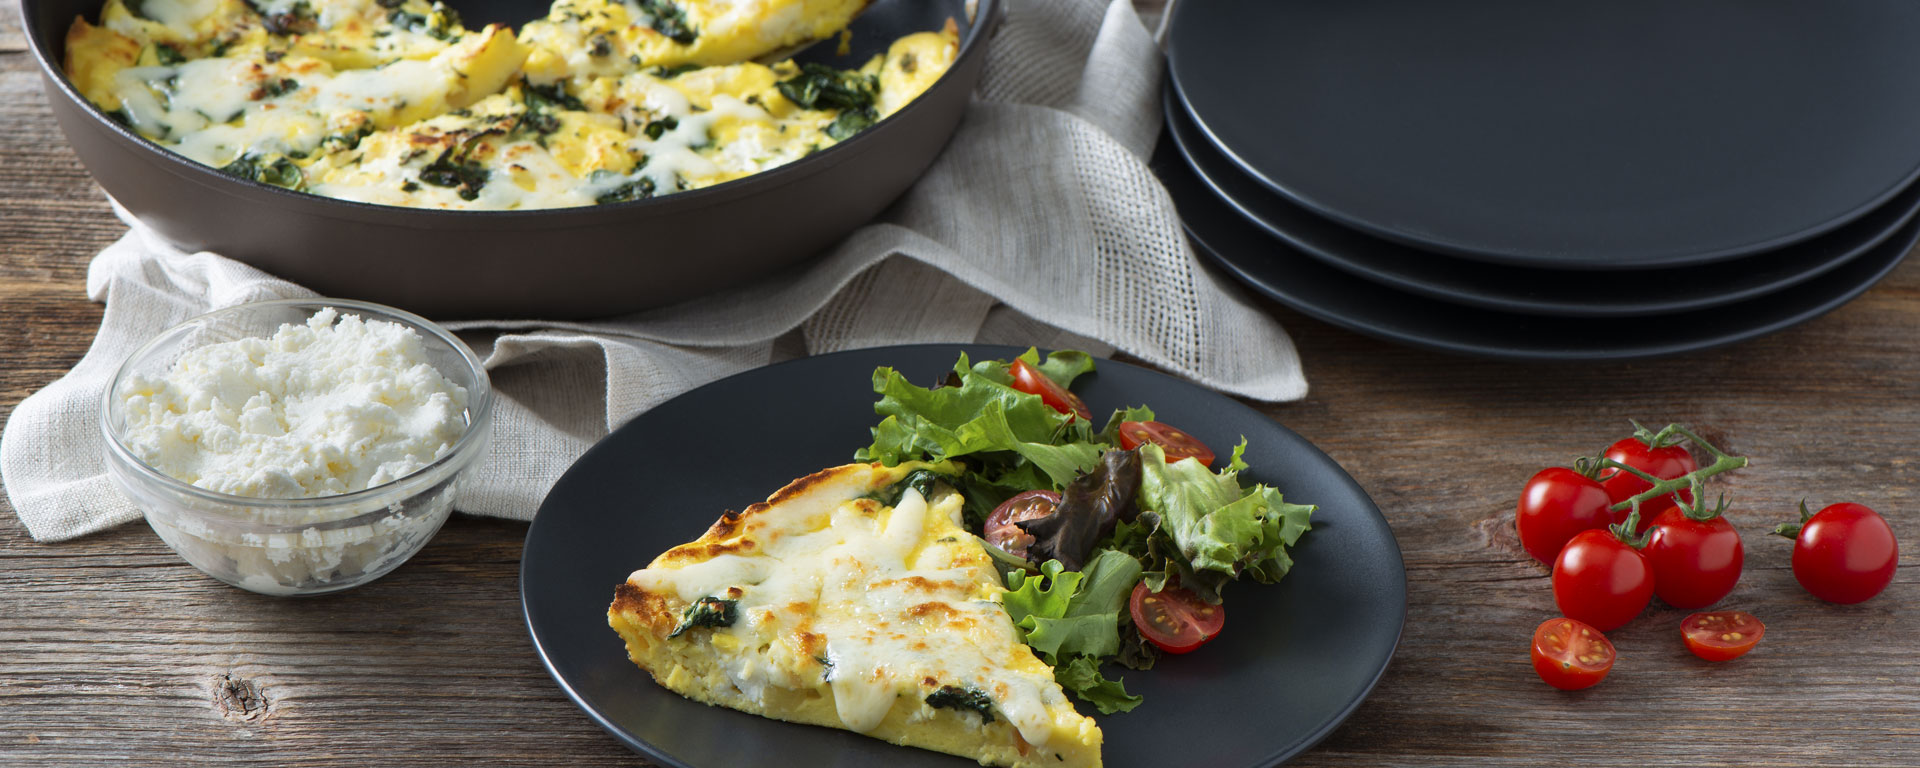 Photo for - Onion and Herb Frittata